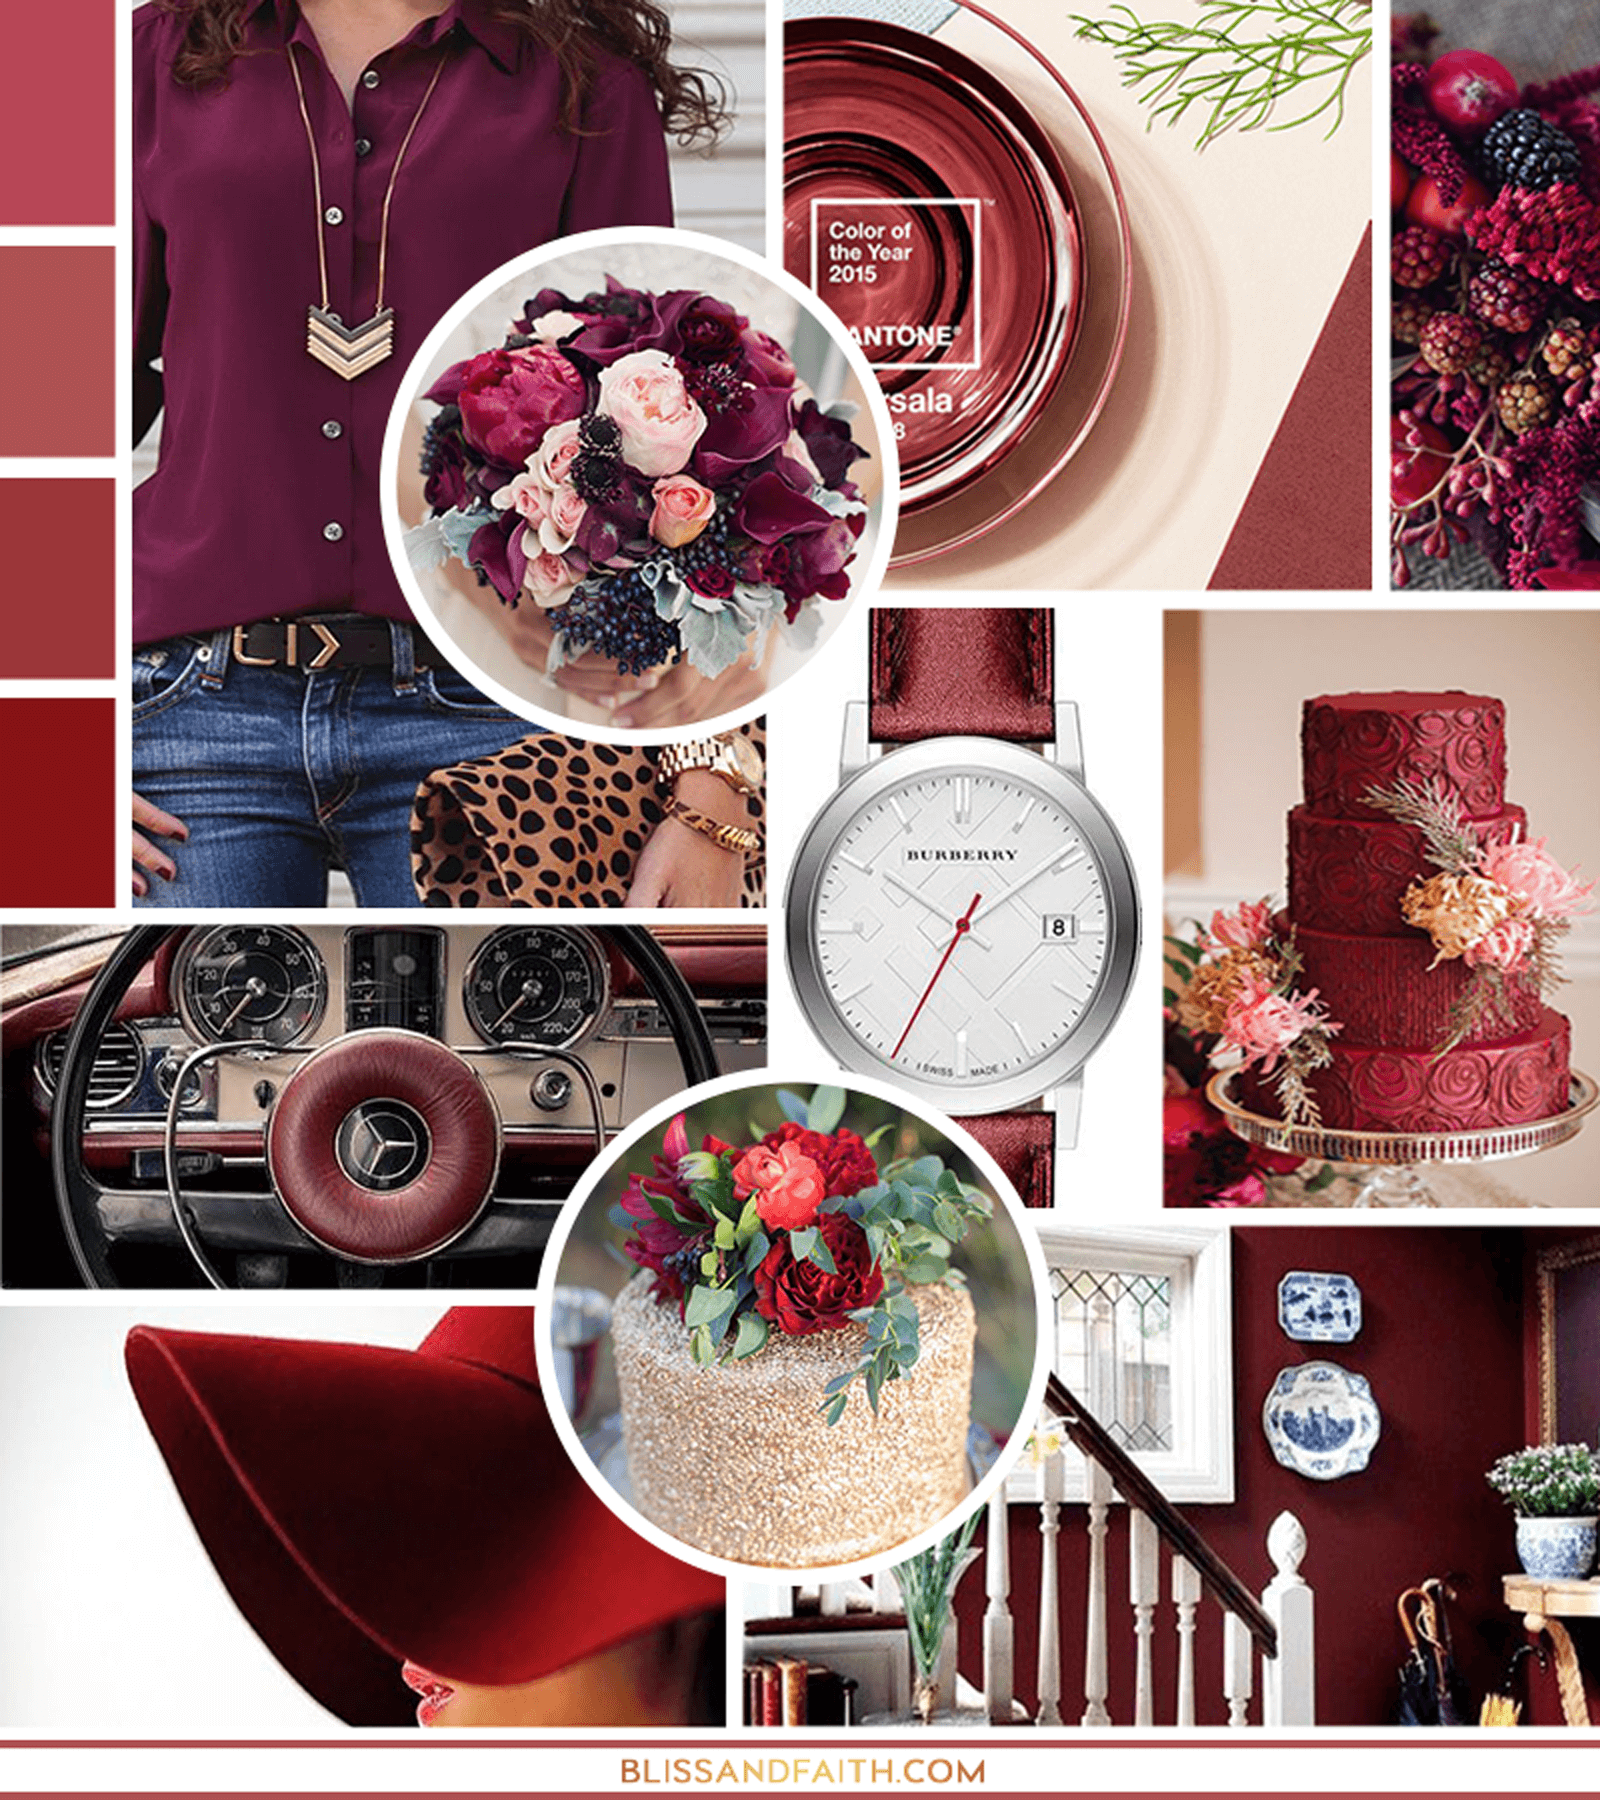 For the Love of Marsala | Mood Board | BlissandFaith.com